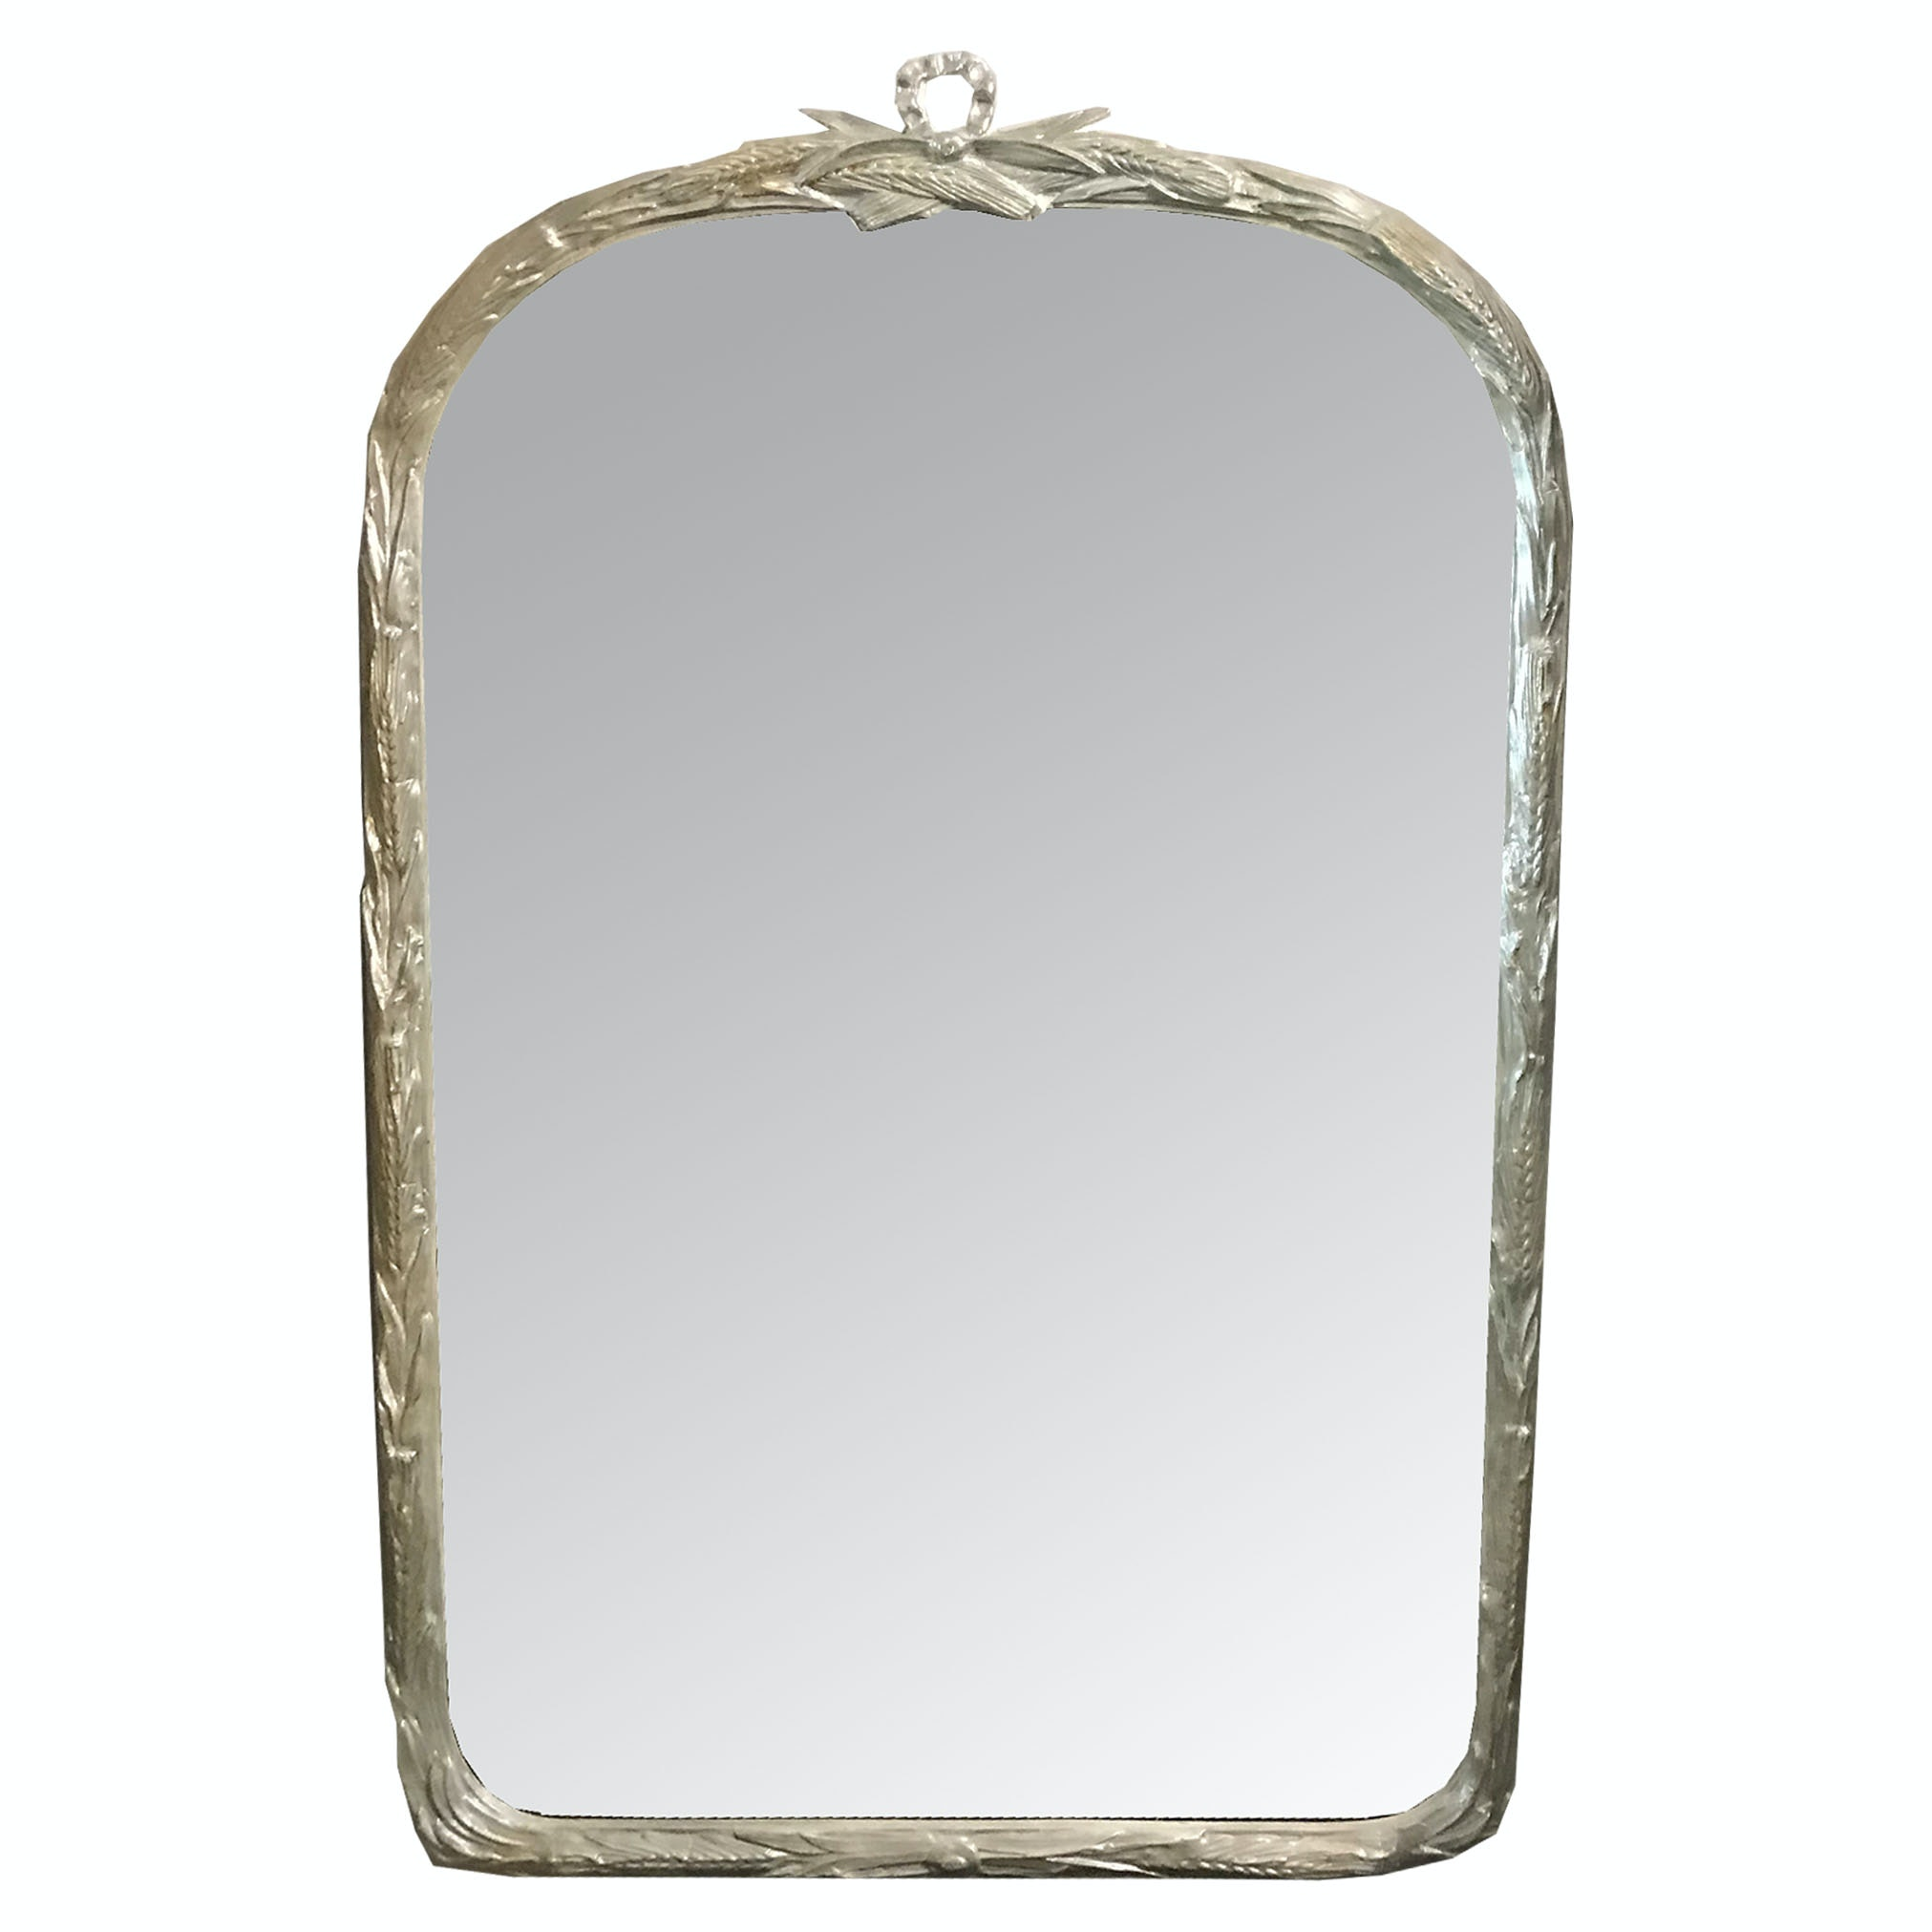 Large Wall Mirror with Carved Satin Border